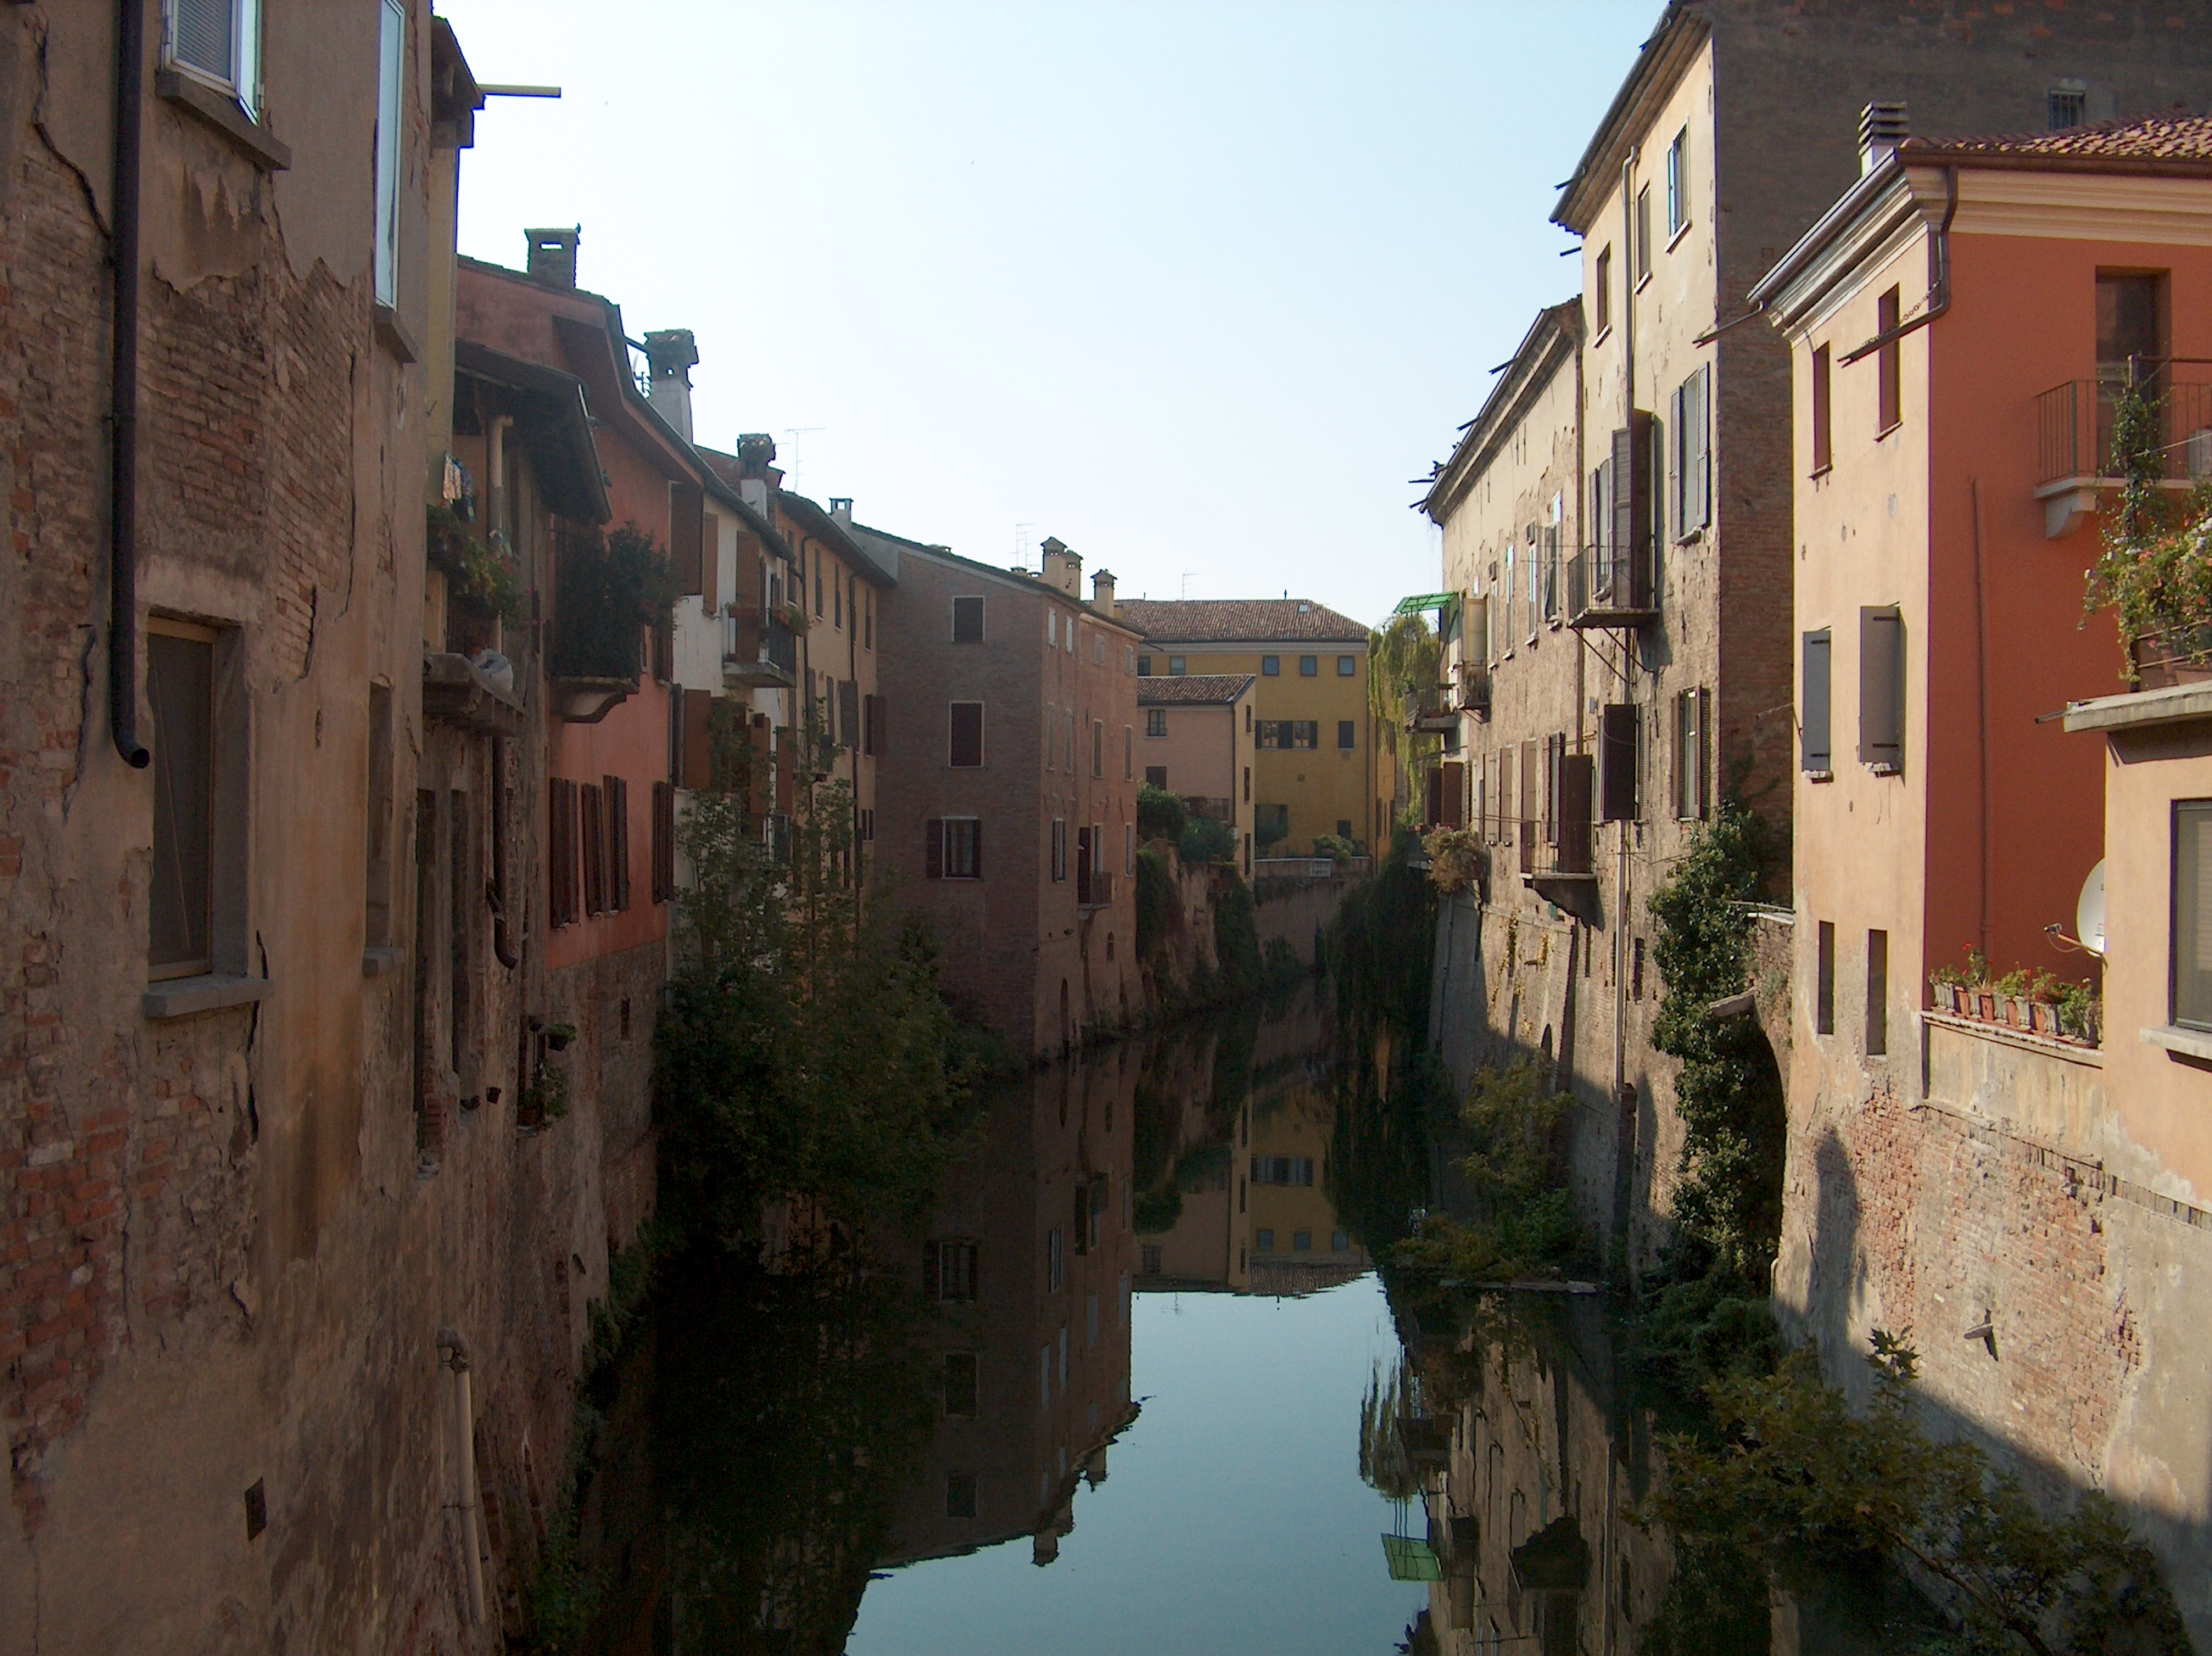 Mantova Italy  city photos : Original file ‎ 2,608 × 1,952 pixels, file size: 2.32 MB, MIME ...